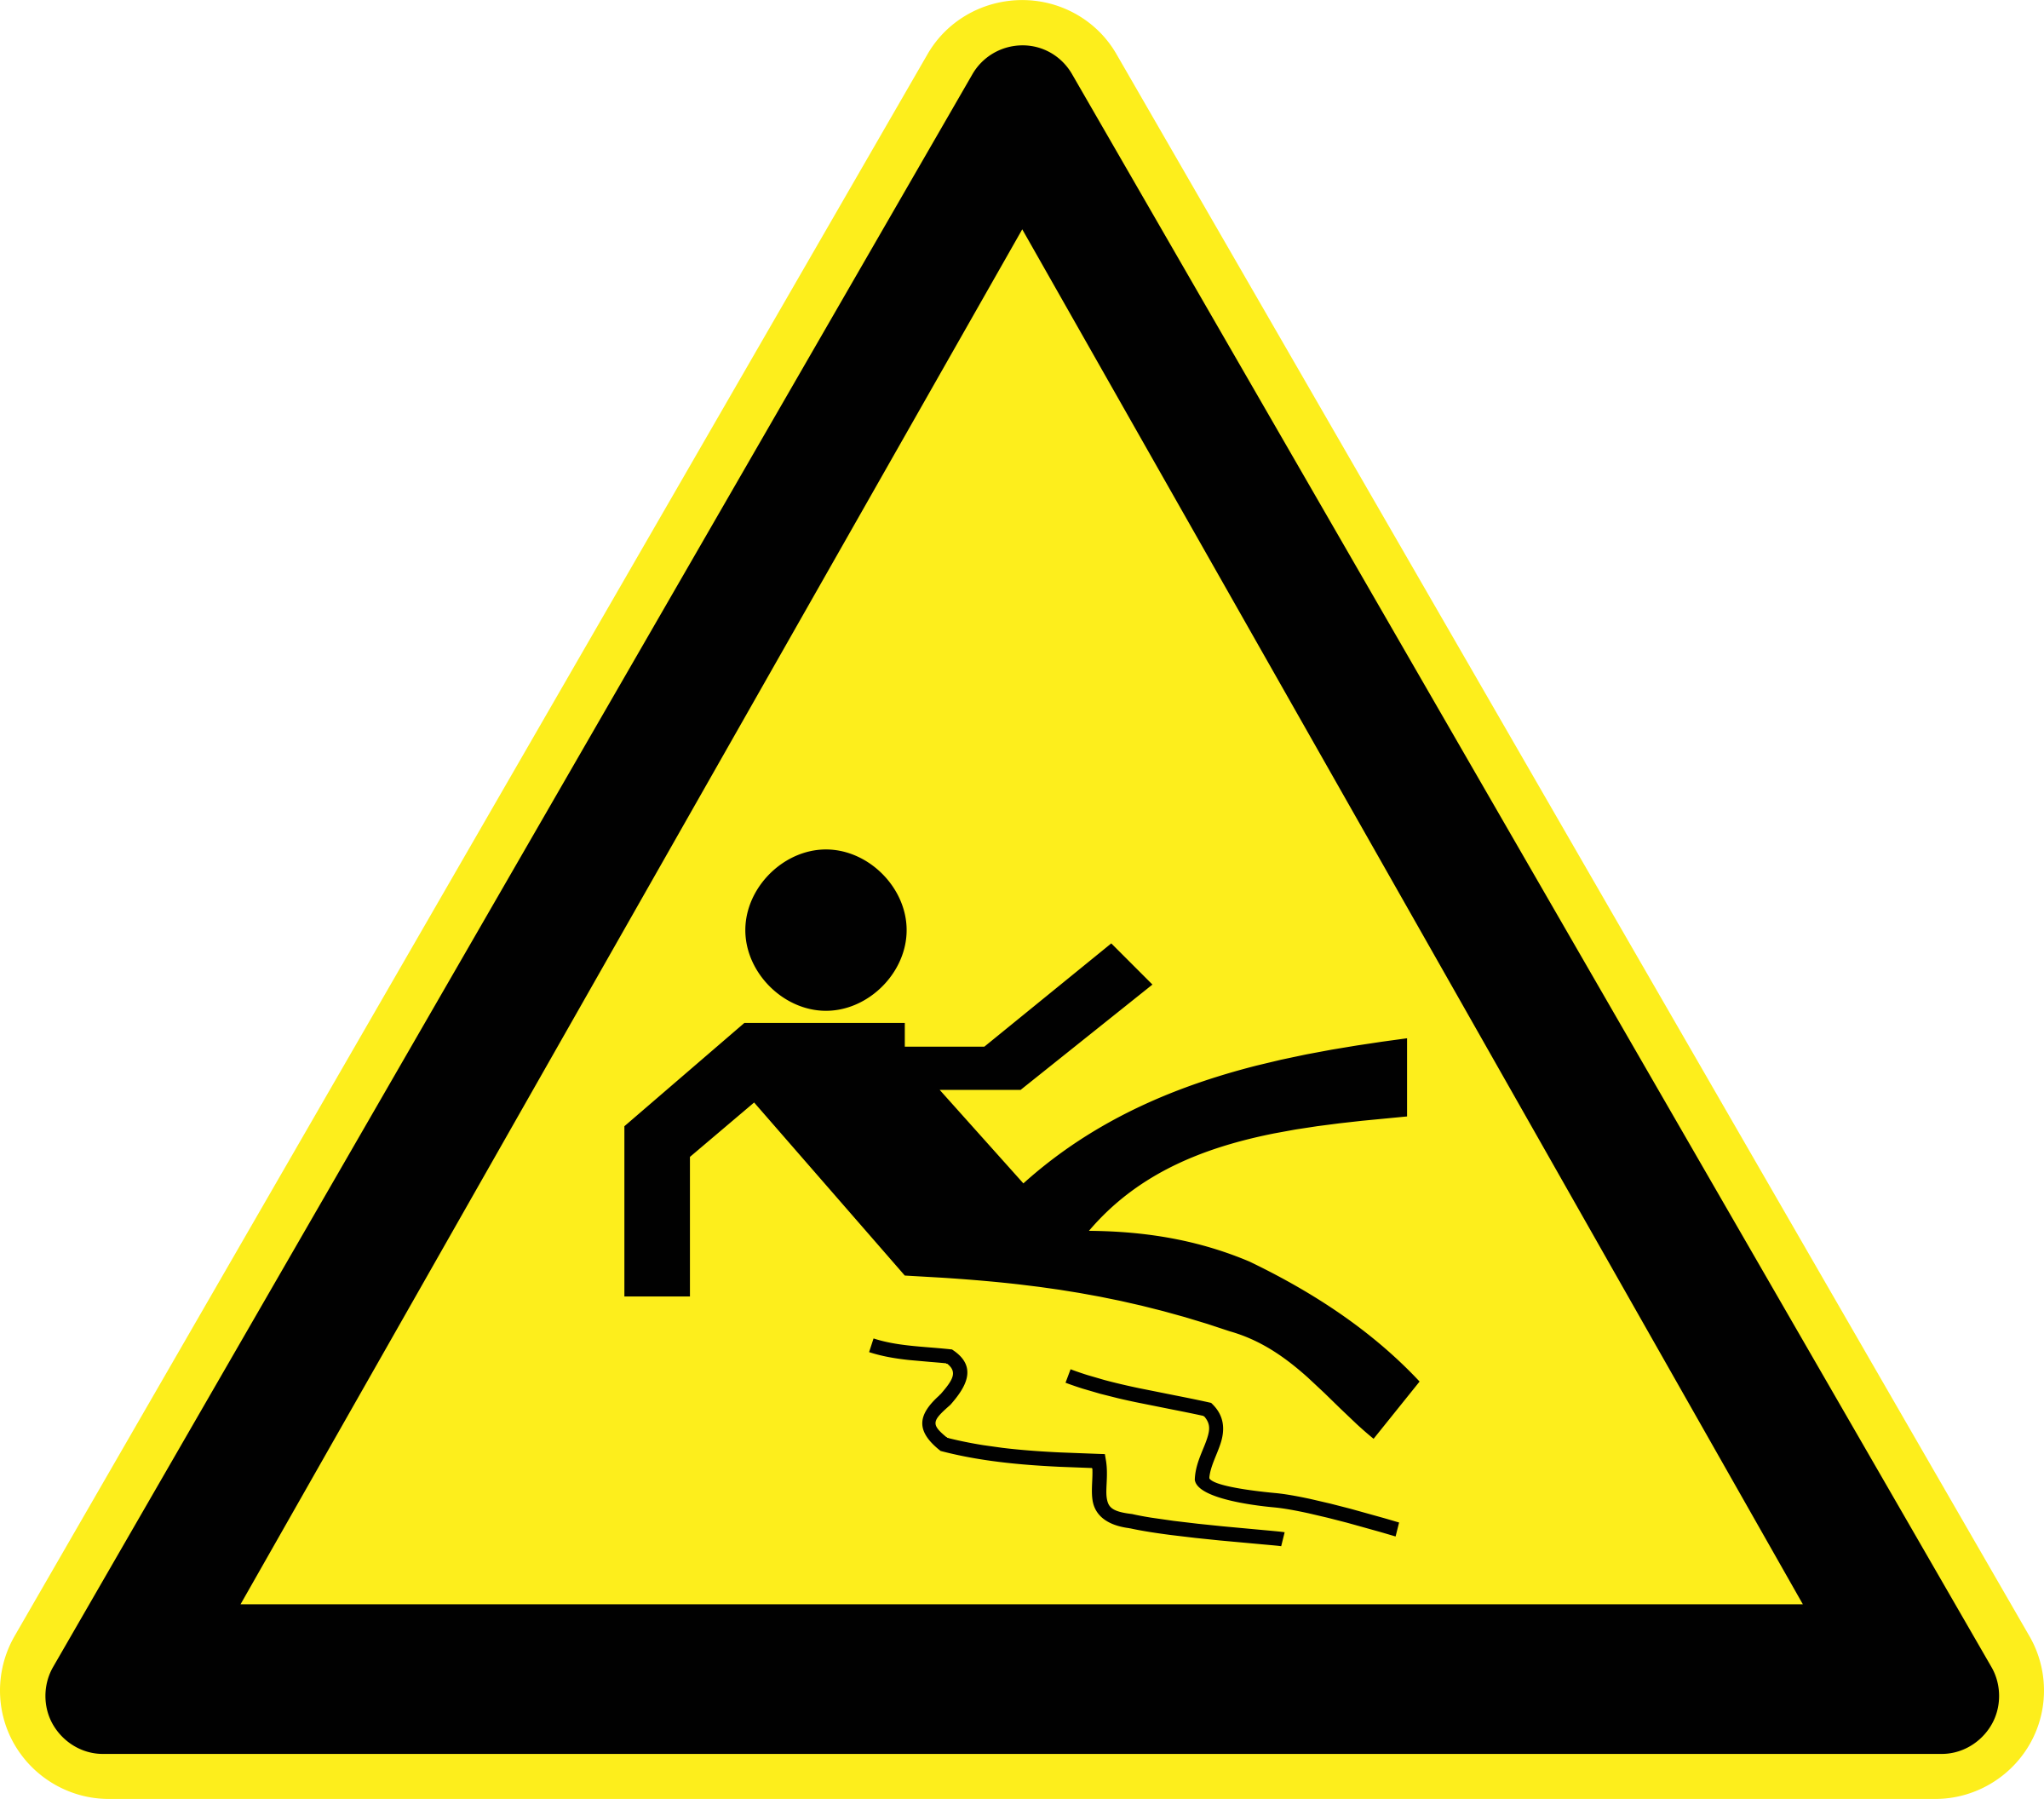 Wet clipart wet thing. And slippery warning sign